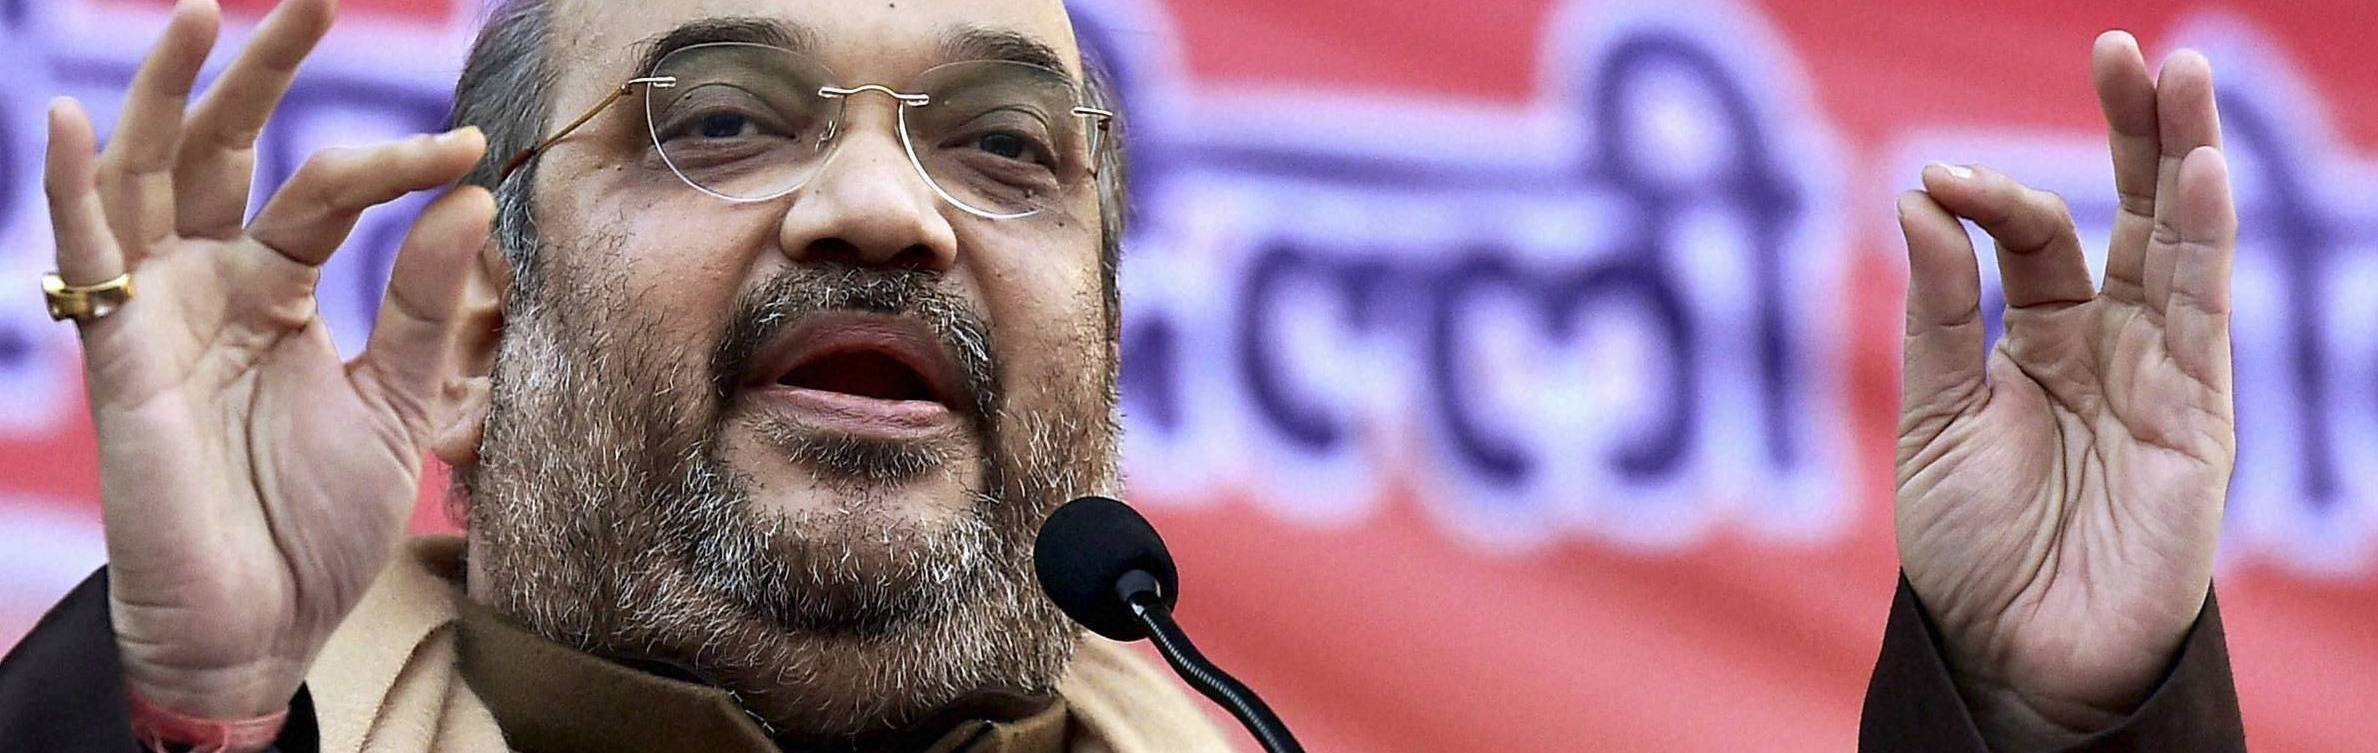 Fact Check: Amit Shah's Claims on Why These Are 'Acche Din'